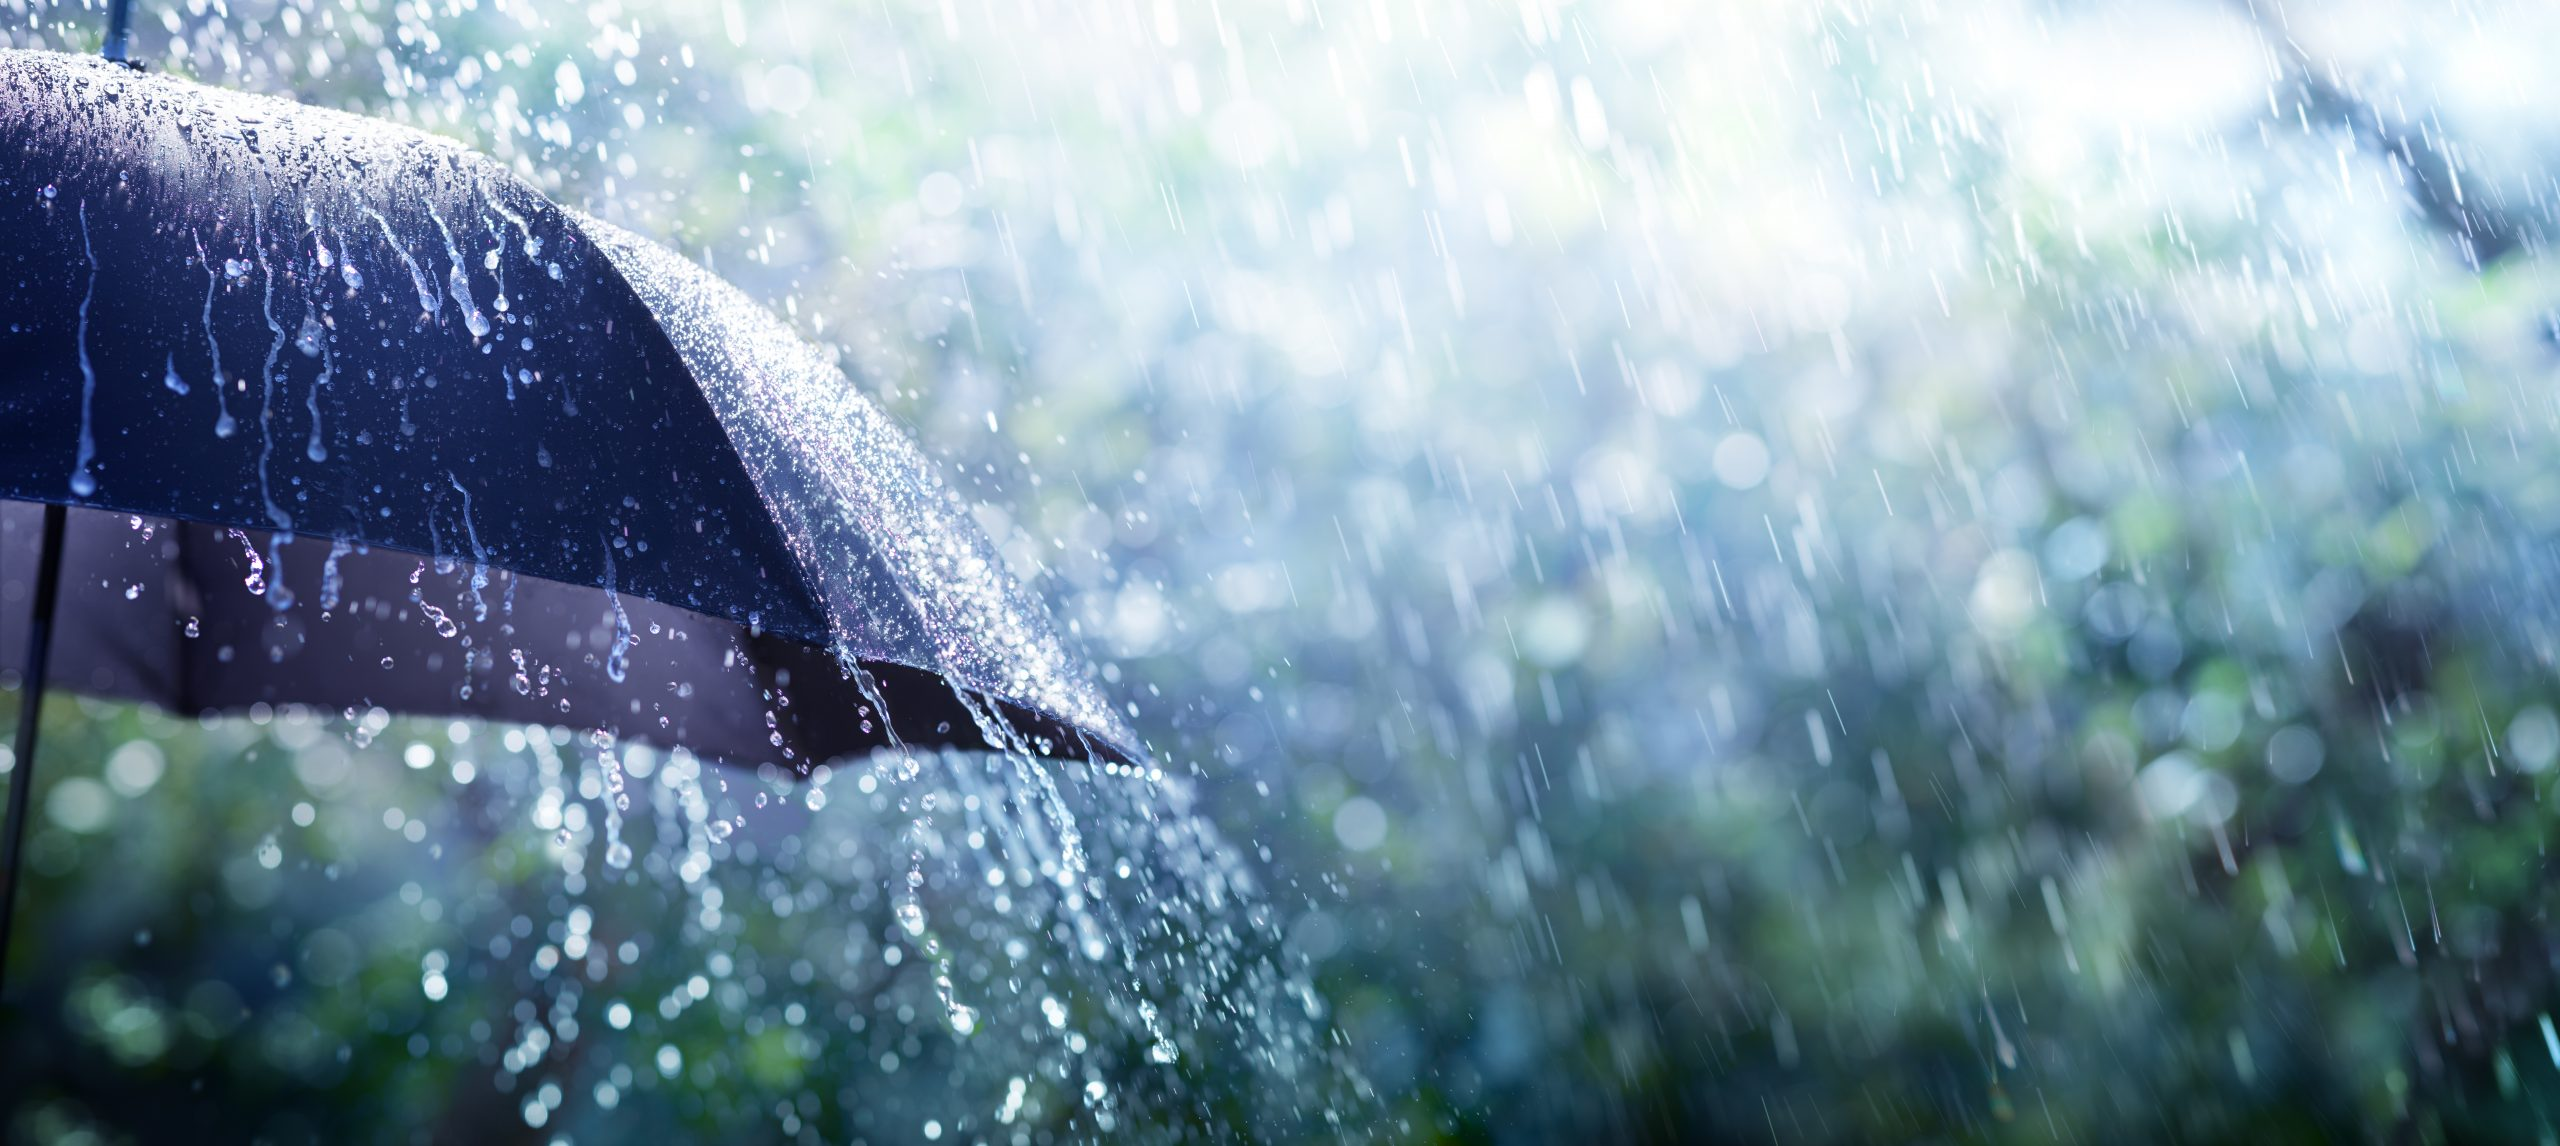 Heavy rains could result in damage to property and vehicles - MoneyMarketing